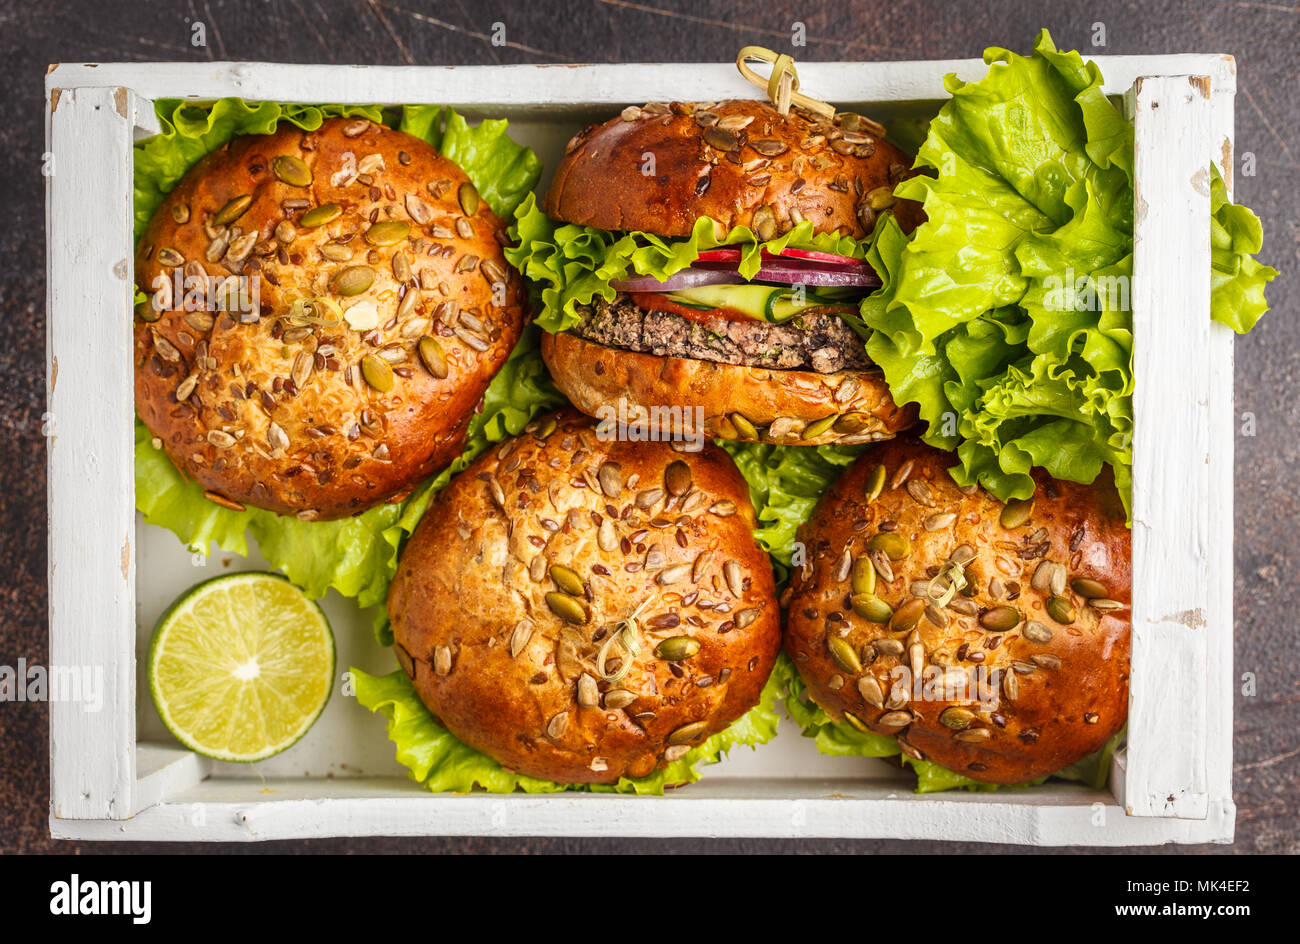 Vegan bean burger with vegetables and tomato sauce in white wooden box, top view. Healthy vegan food concept. - Stock Image